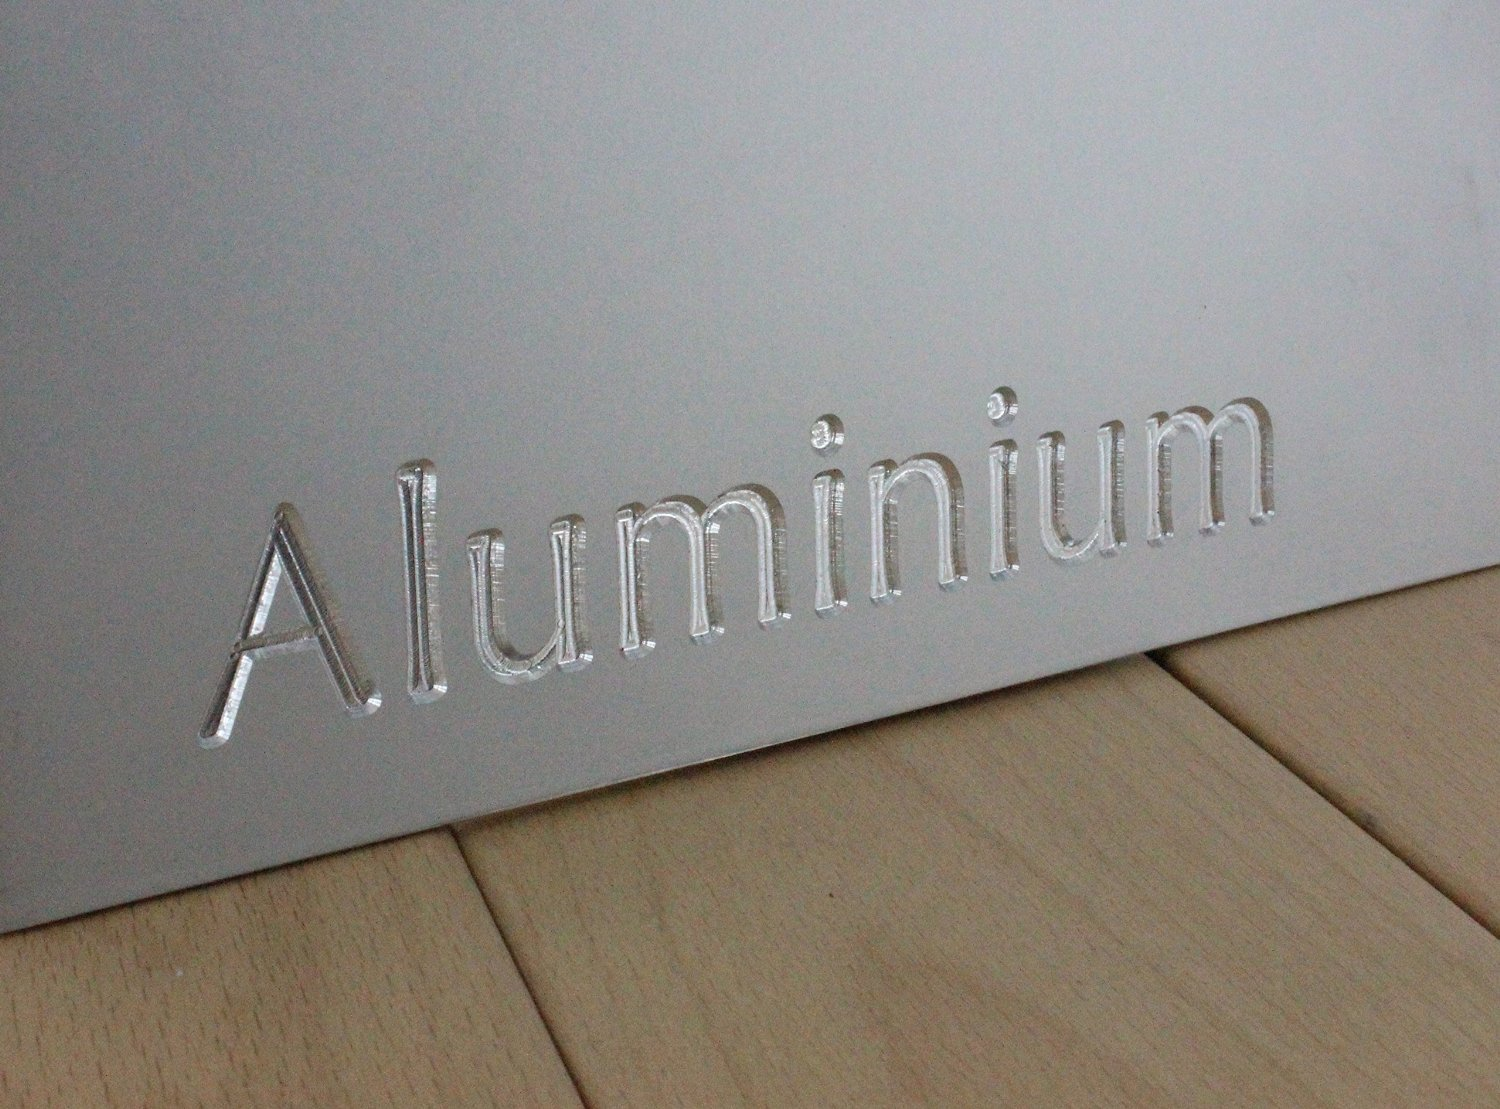 3.0mm Thick Aluminium Sheet Plate - 23 sizes to choose from (50mm x 50mm) SGS